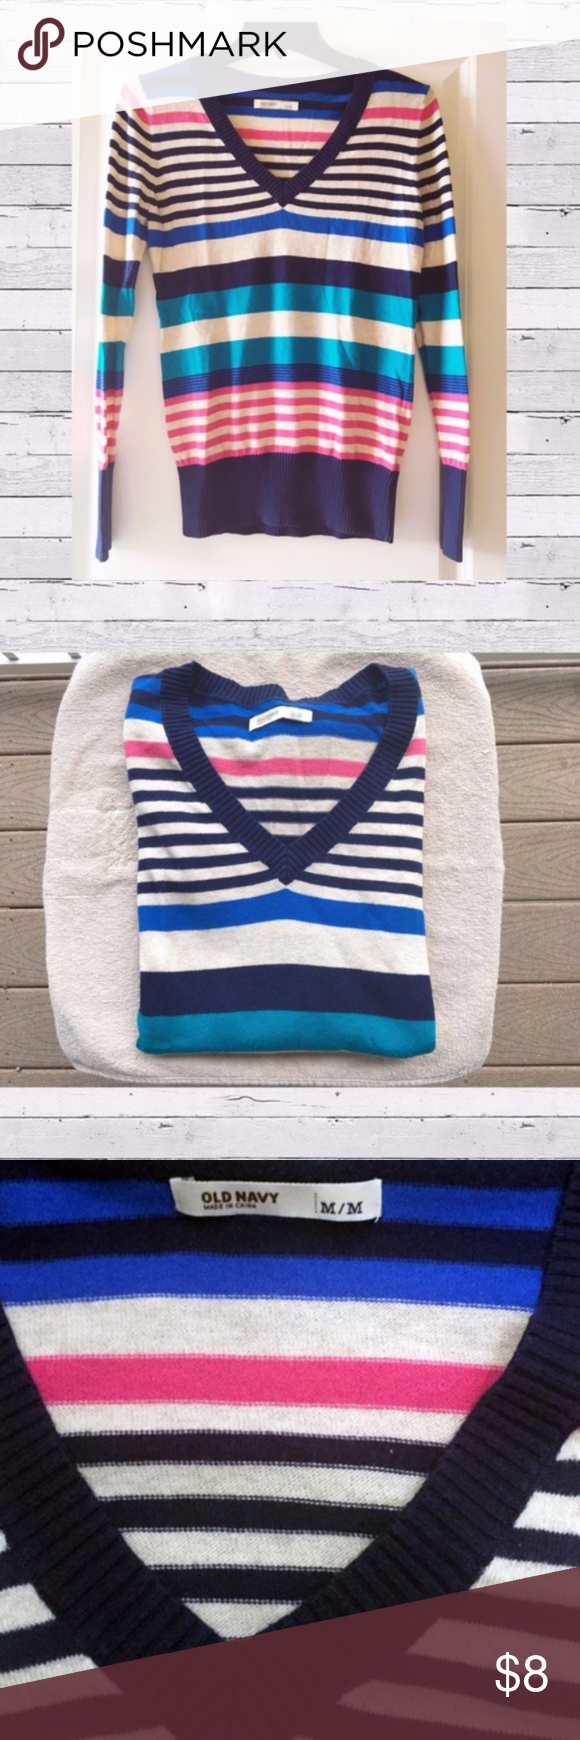 Old Navy striped sweater sz. M 53% cotton LIKE NEW | Navy stripes ...